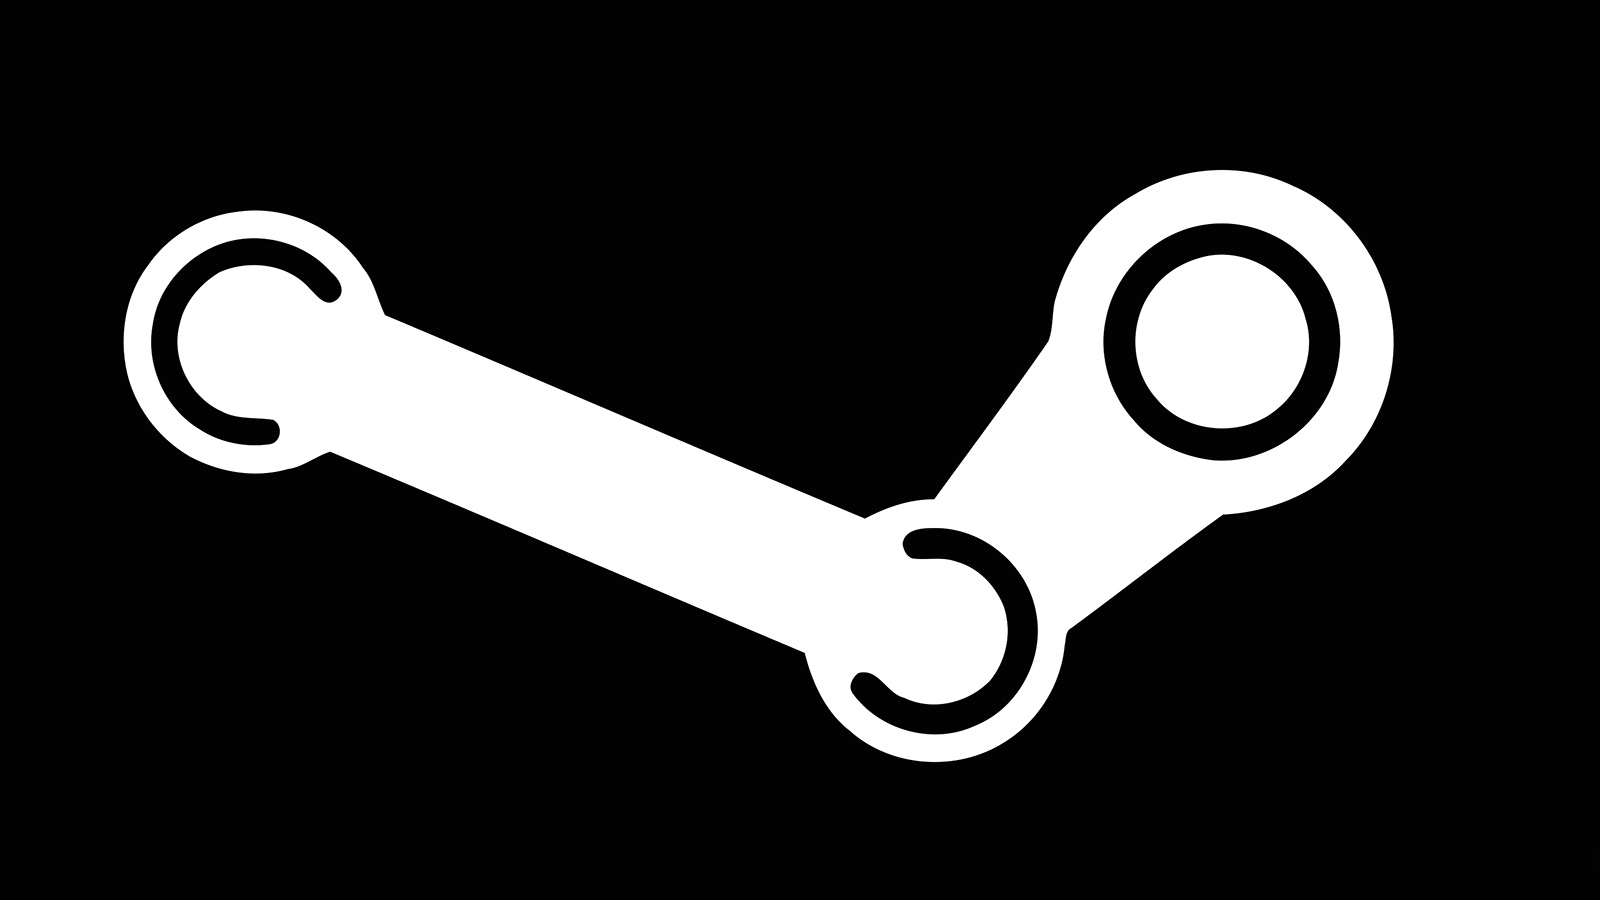 Steam is suffering ongoing outages (update)